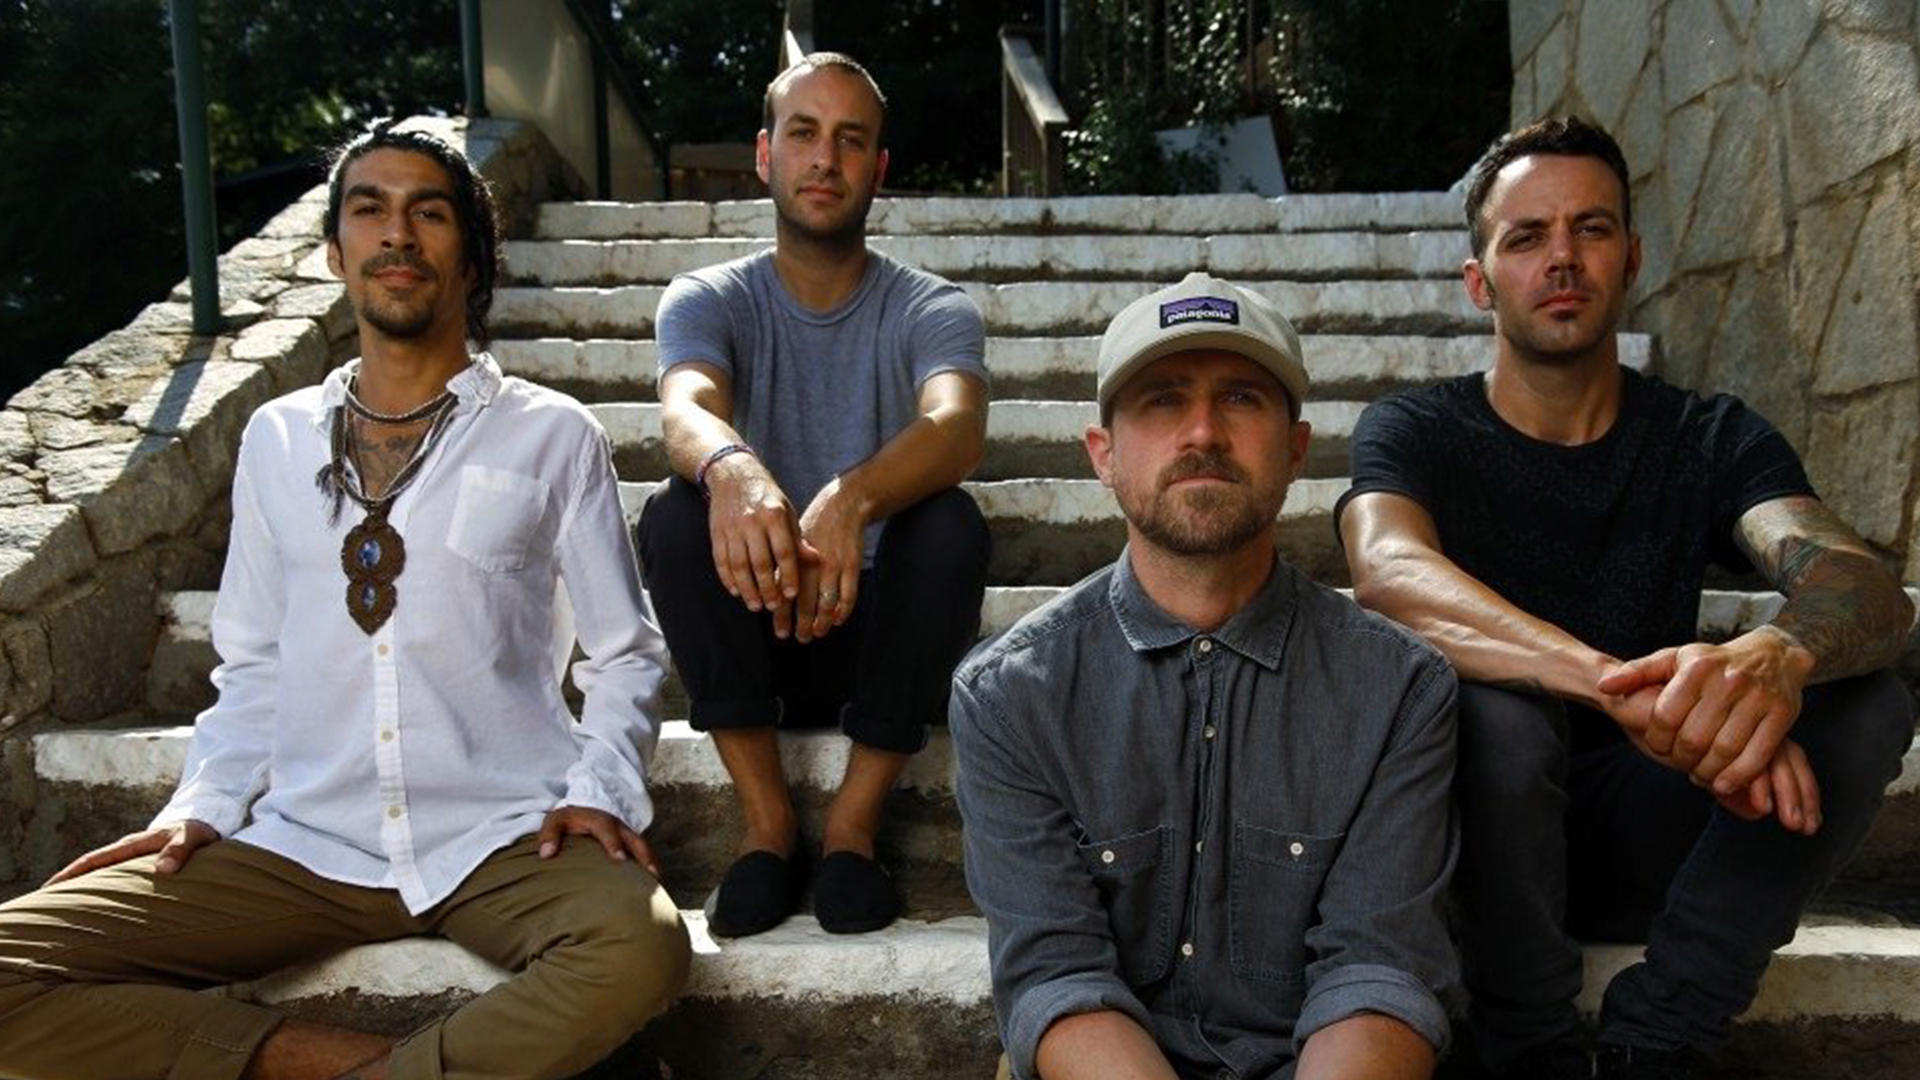 brand new announces fall tour with the front bottoms modern baseball